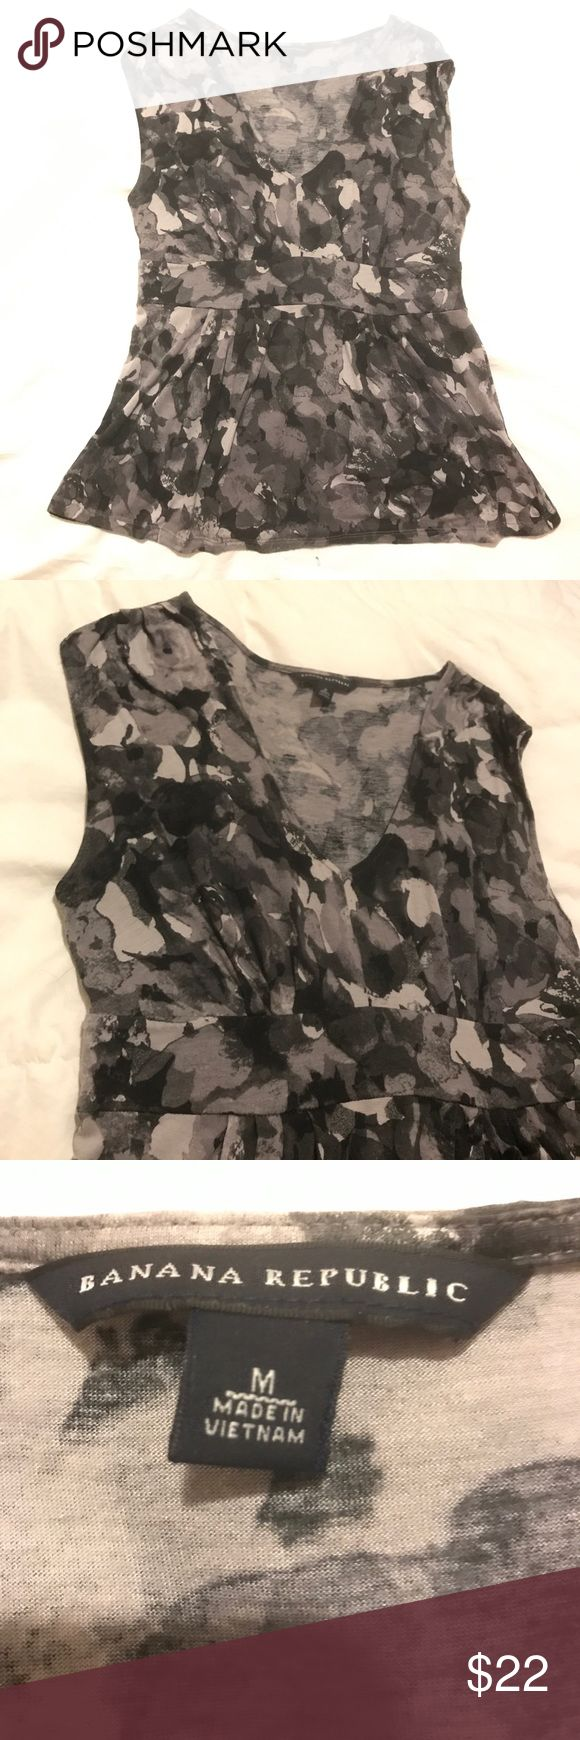 Sleeveless Top This is a grey sleeveless top perfect for work and to dress up with accessories for a night out at a restaurant. It is made up of 70% Rayon and 30% Lyocell. Banana Republic Tops Blouses